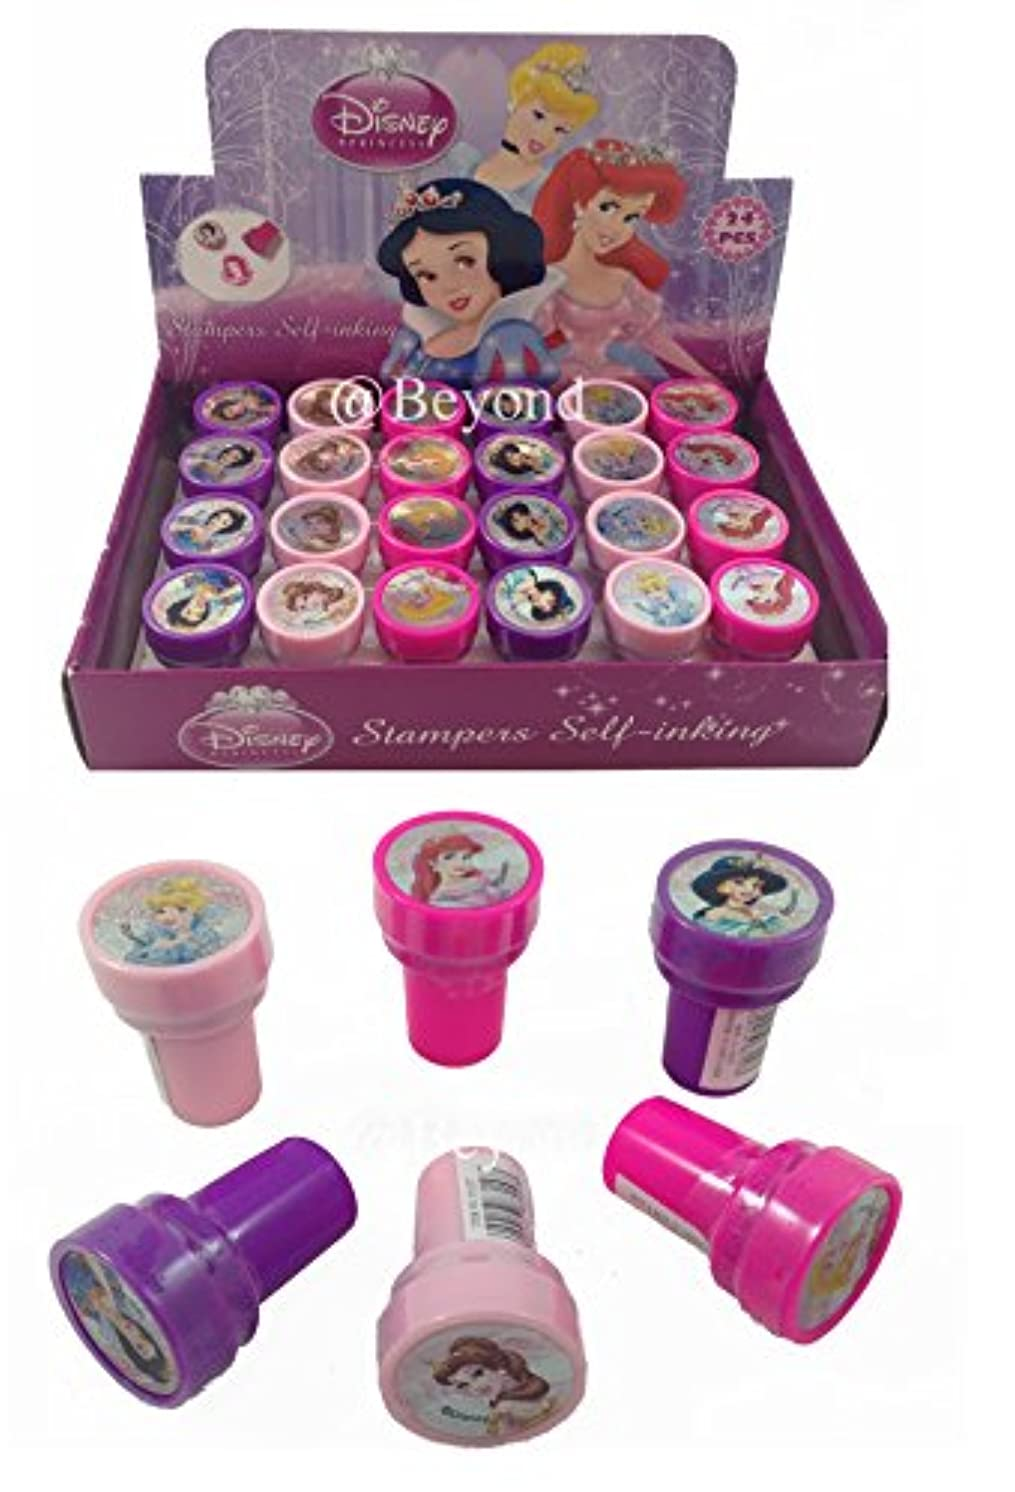 New Disney Cartoon Frozen Mickey Character Stampers Self-inking Stamps / Stampers Party Favors 24 Counts (Style 3)